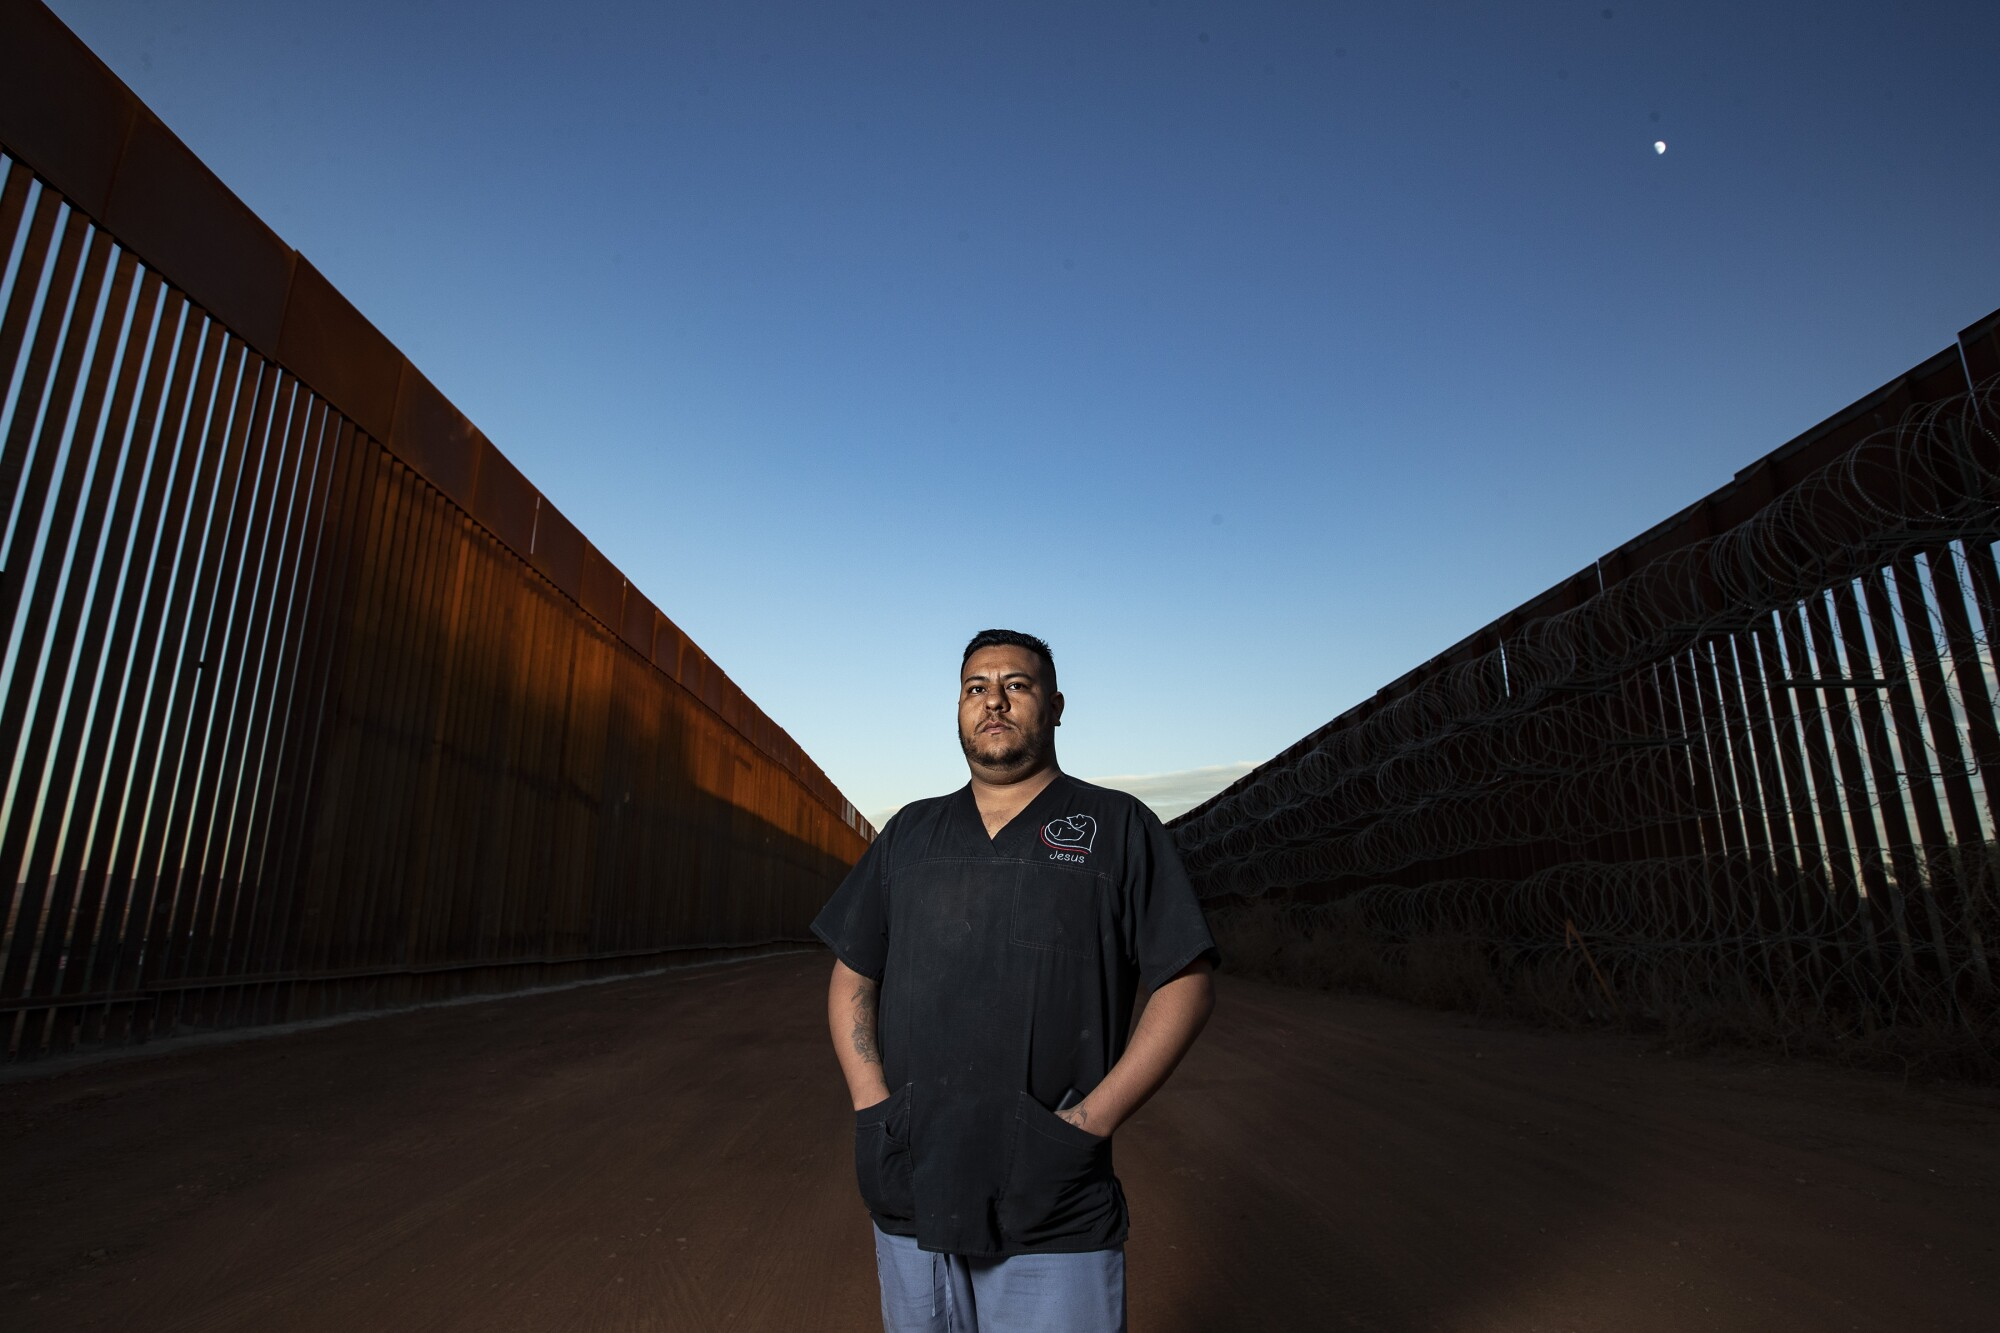 Veterinary assistant Jesus Tarazon stands for a portrait between the new border wall and the old wall.